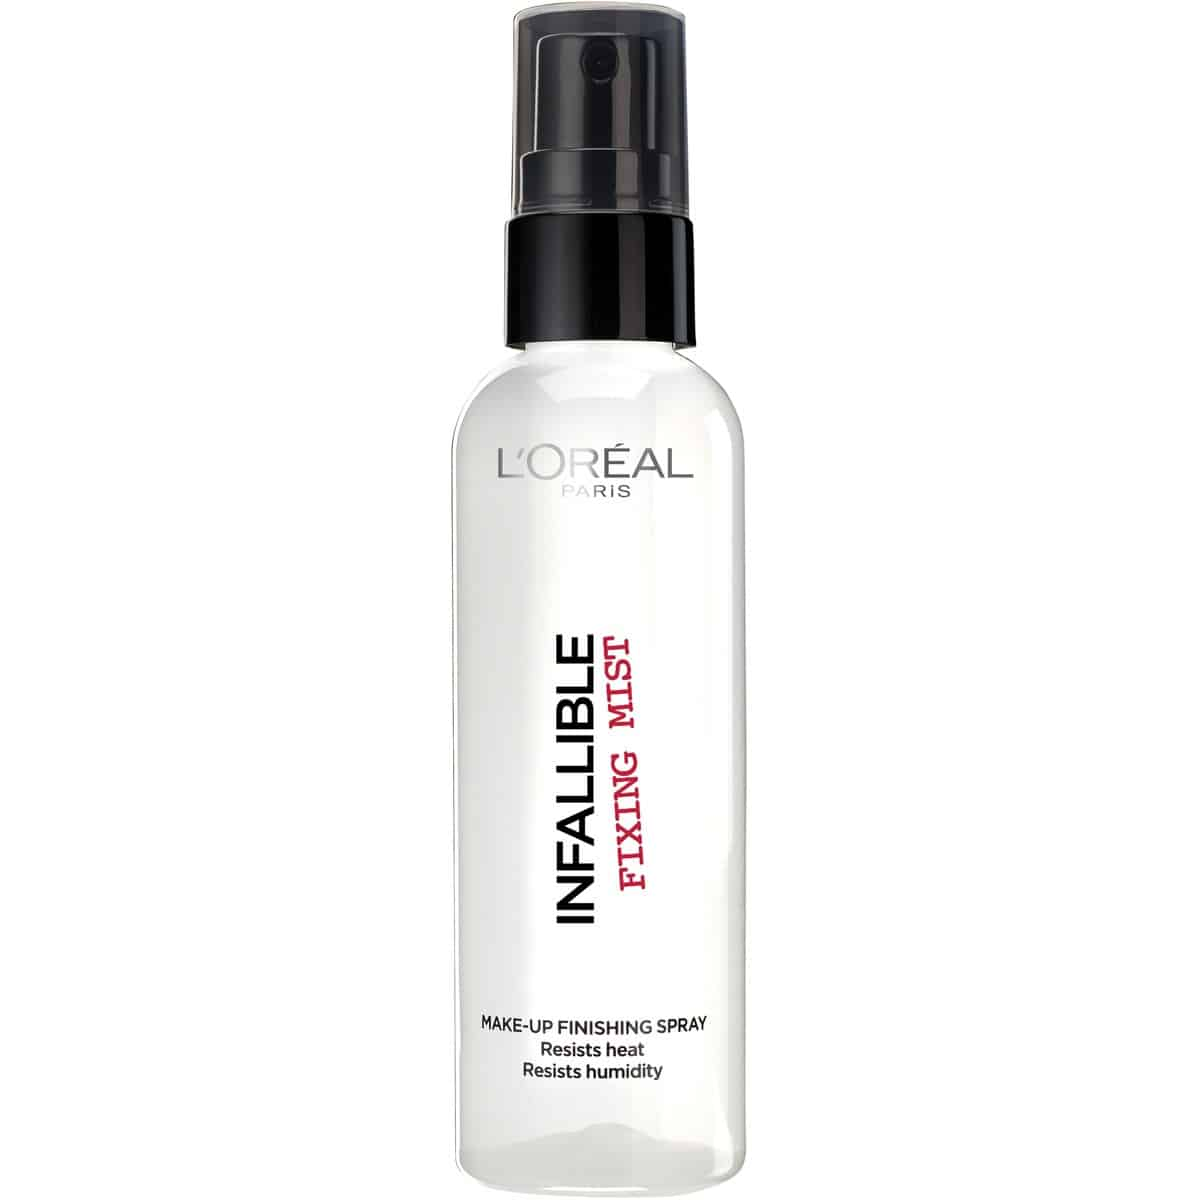 LOreal-Paris-Fixing-Spray